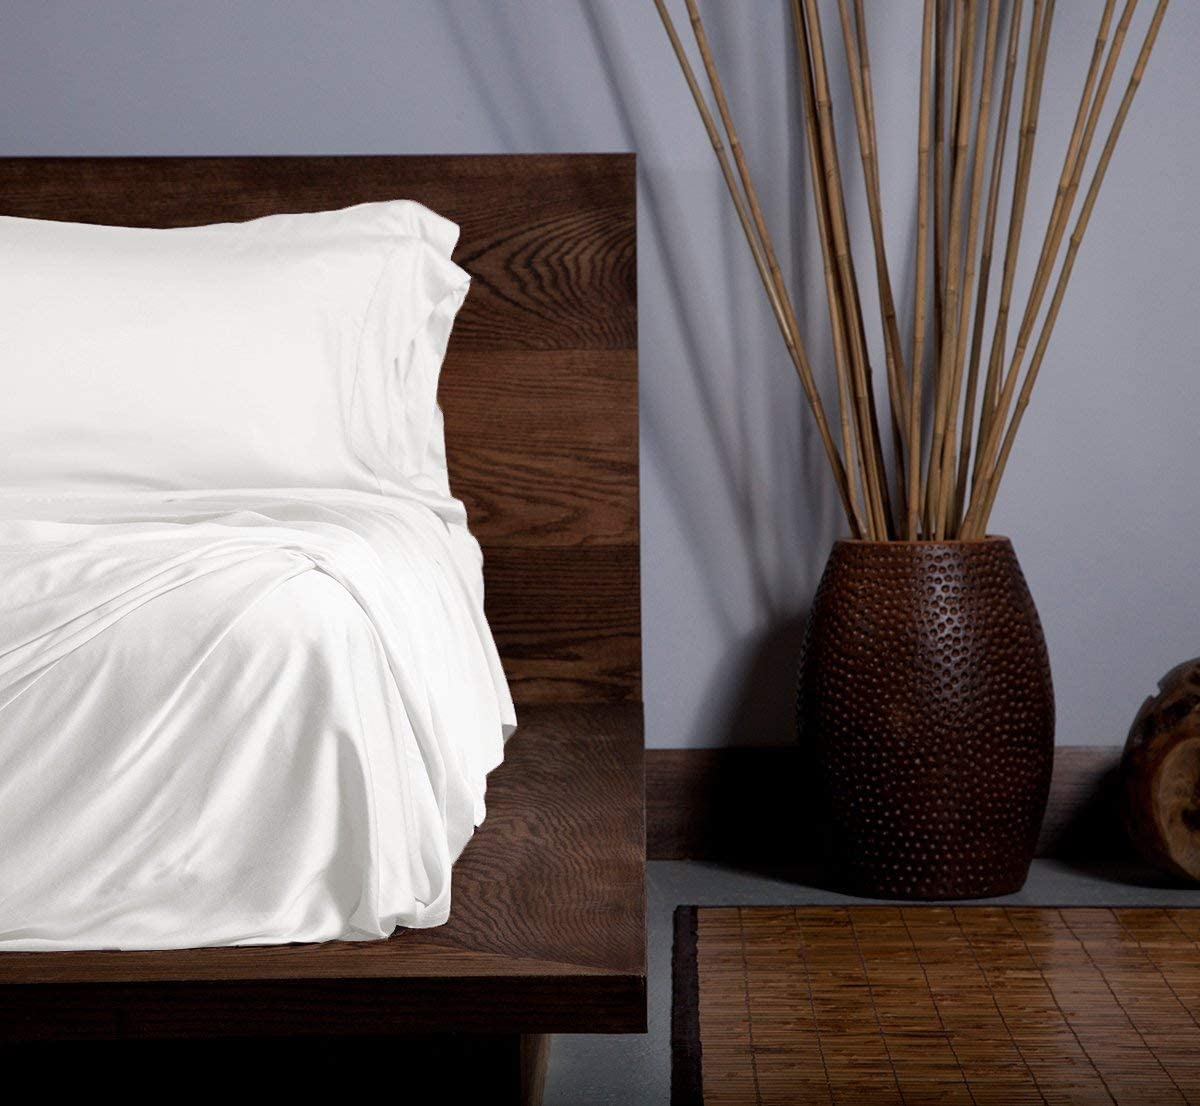 SHEEX Ecosheex Bamboo Origin Sheet Set